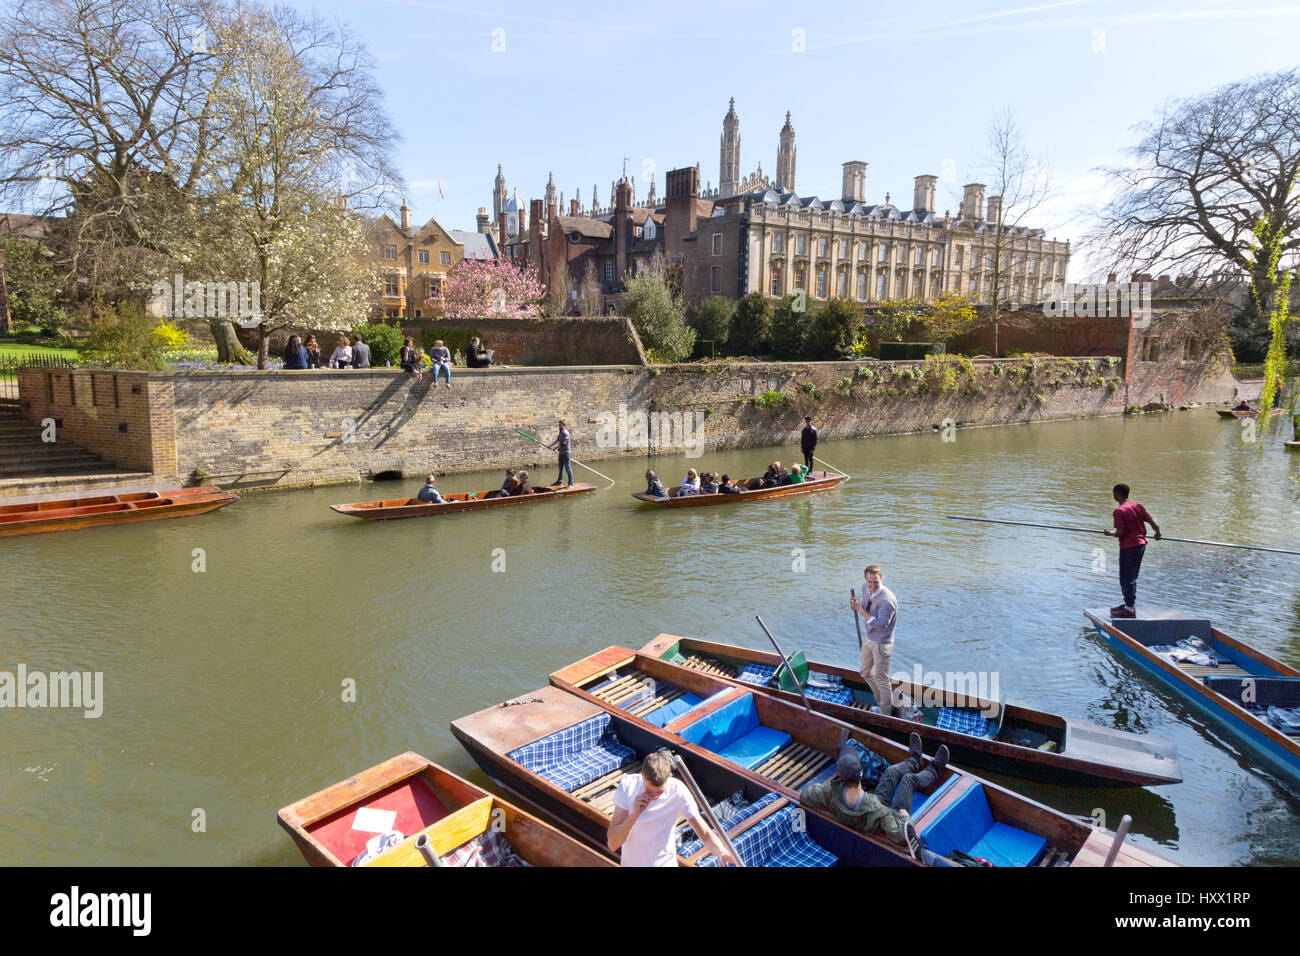 Cambridge UK - Cambridge punting on the River Cam by Trinity Hall and Clare colleges, the Backs, Cambridge England - Stock Image